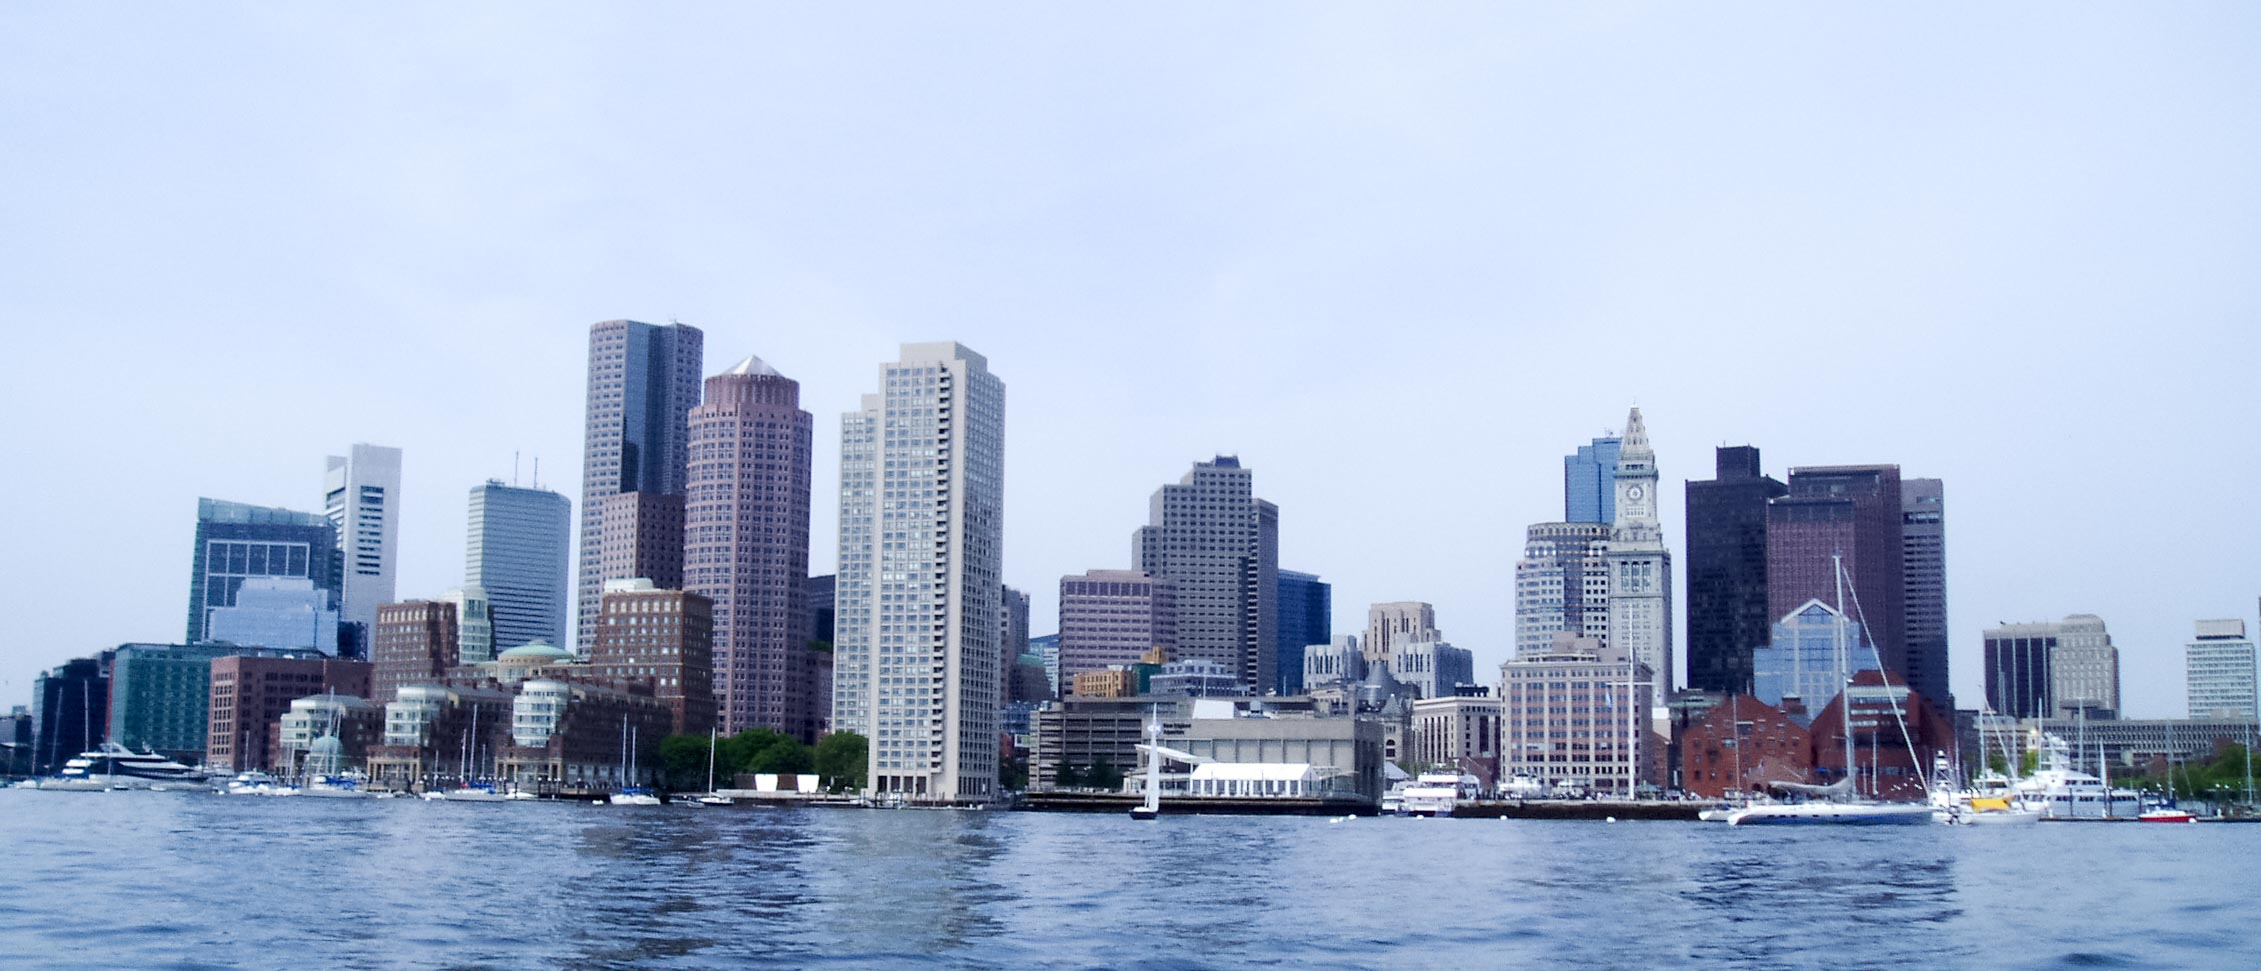 nice pictures of Boston and the conference venue